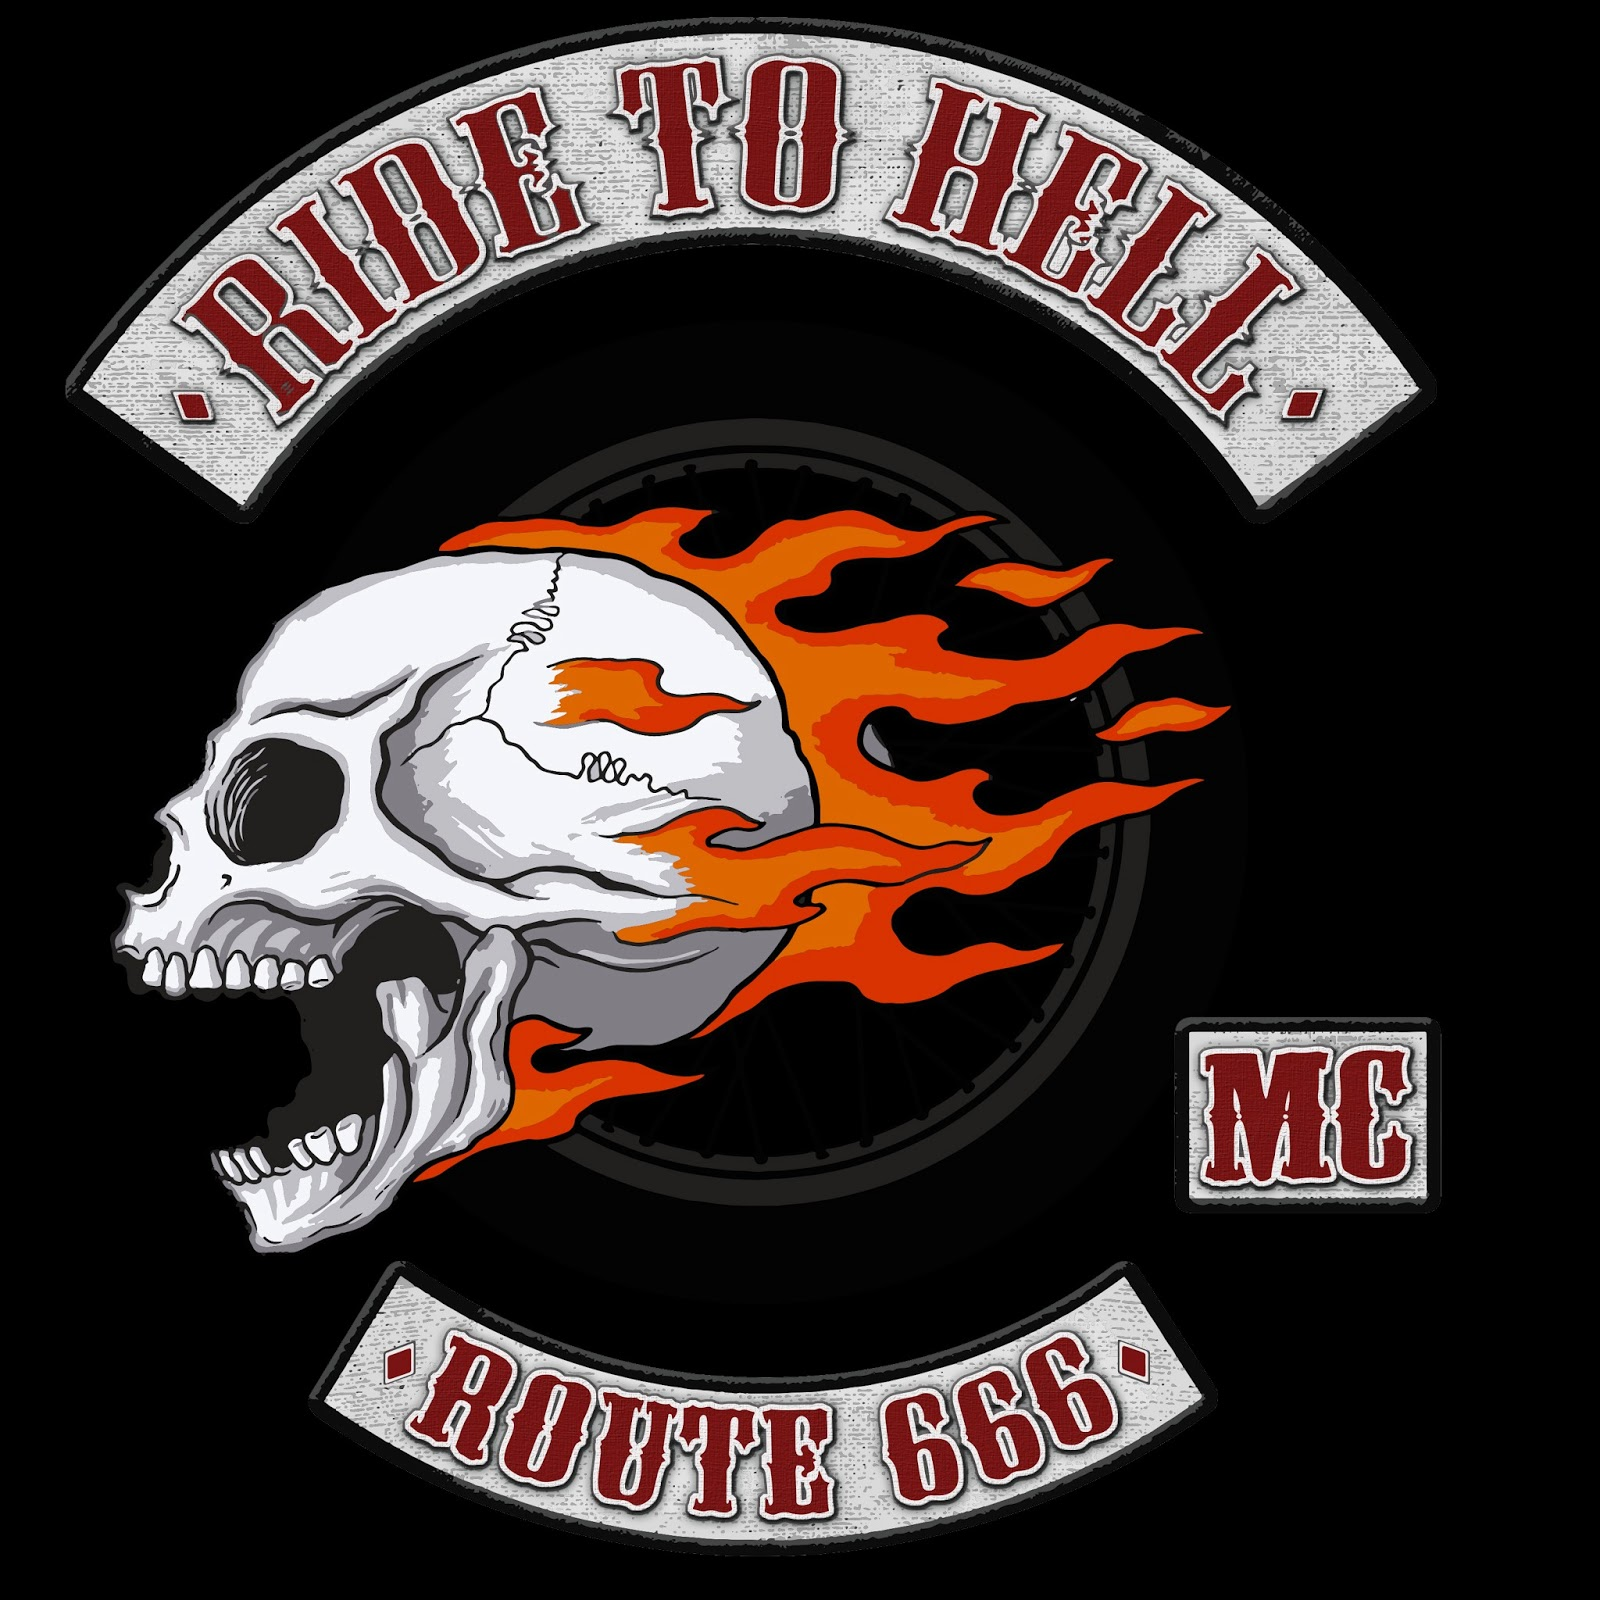 RTH Route666 logo call of duty, modern warefare 3, mw3, black ops, beta, xbox 360, ps3, glitch, psv, vita, skyrim, halo, psp, ios, android, ipad, iphone, gameplay, trailer, video, game, news, review, preview, podcast, ipod, playstation, pc, windows, steam, apple, mac, mass effect, starhawk, uncharted, the last of us, naughty dog, realgamernewz, cod8, cod9, infinity ward, treyarch, ea, jon ireson, paul ireson, boody bandit, oliver wright, hitman0769